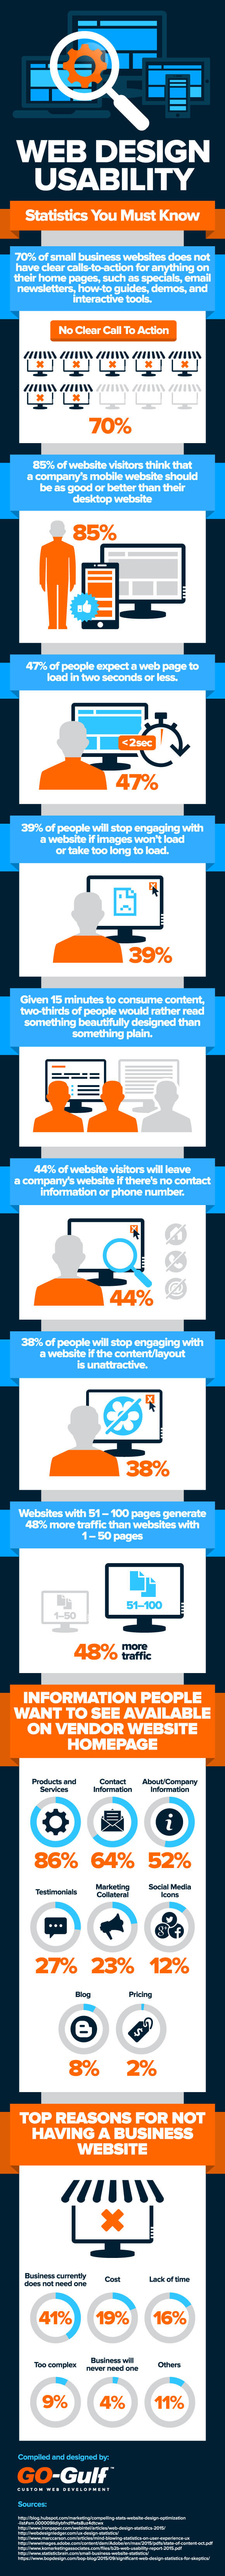 Web Design Usability Statistics You Must Know